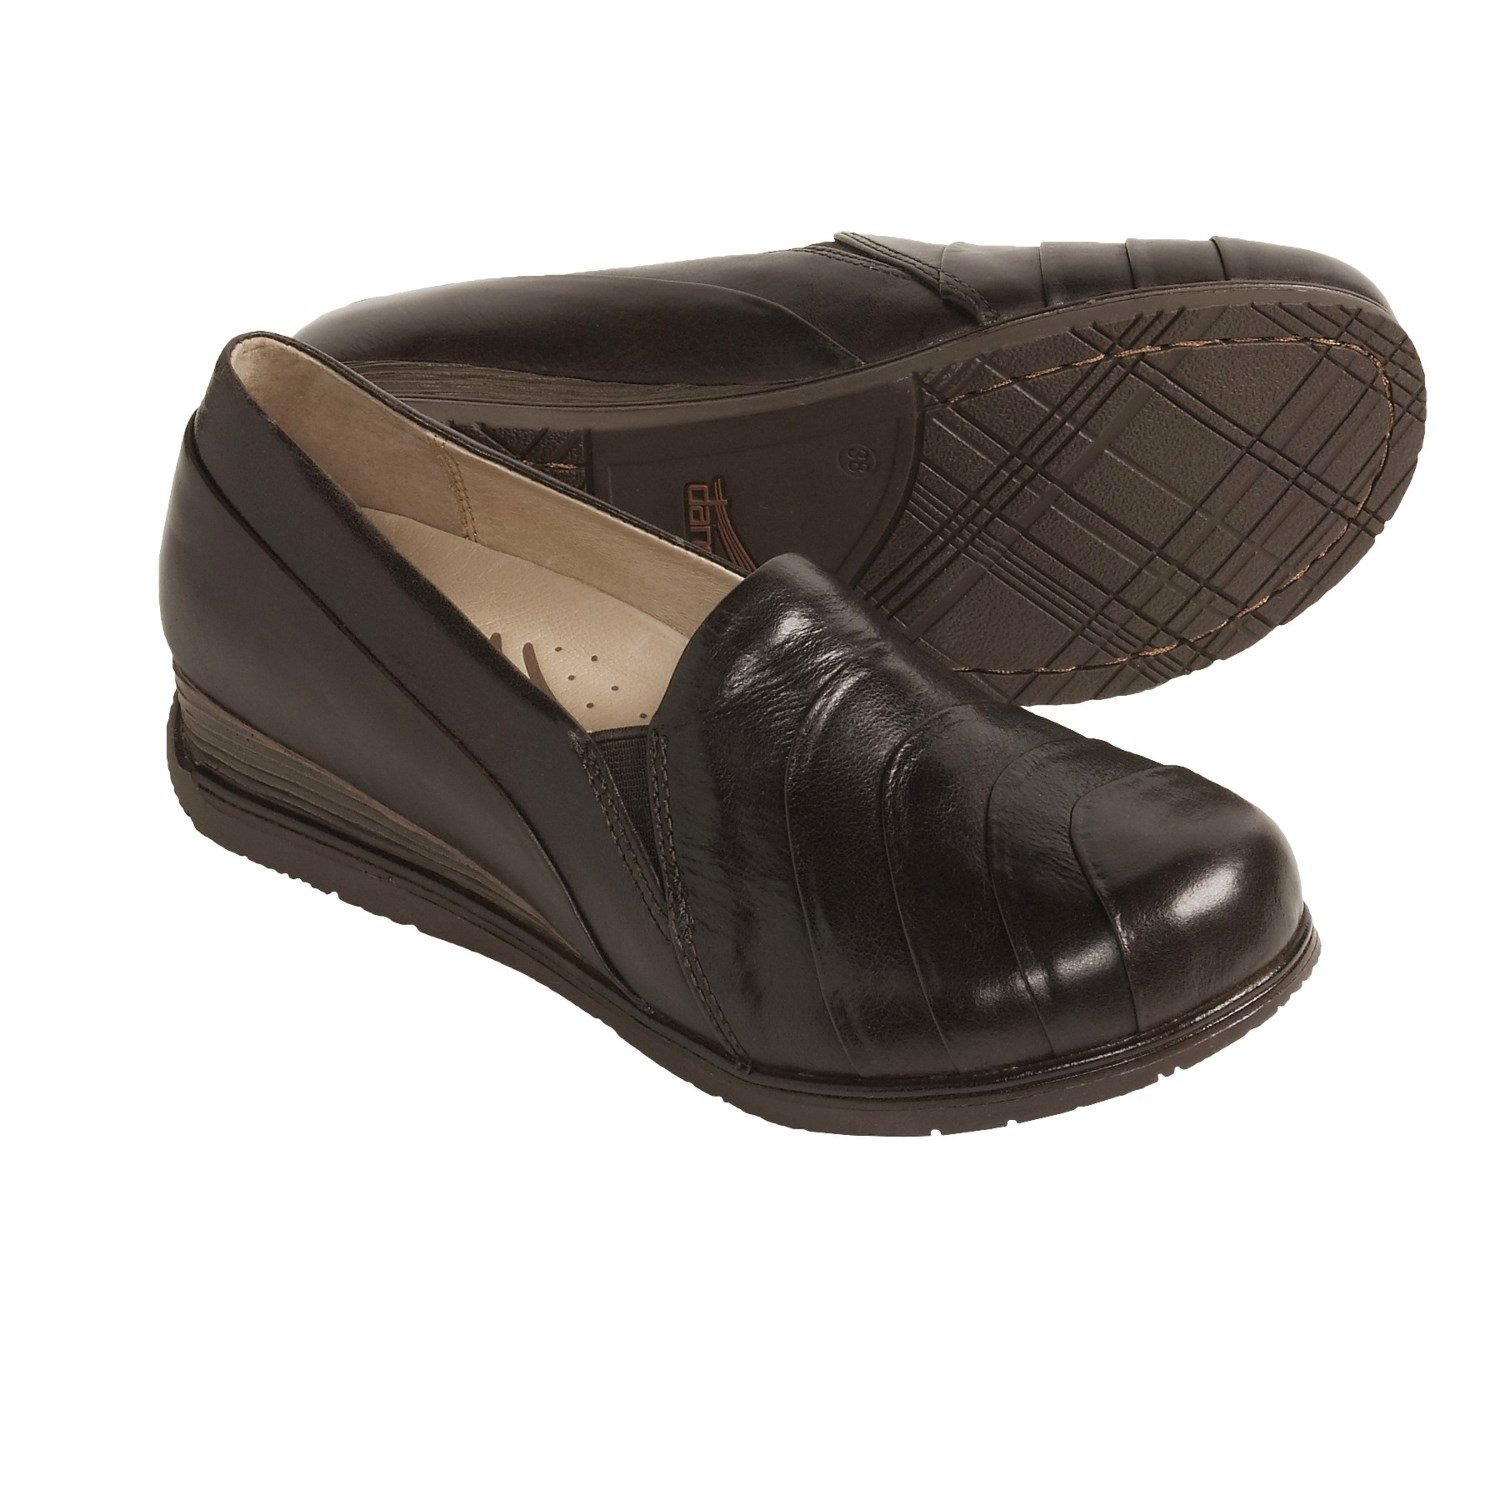 Dansko - Comfortable Shoes | Comfort Shoes Perth - Paul